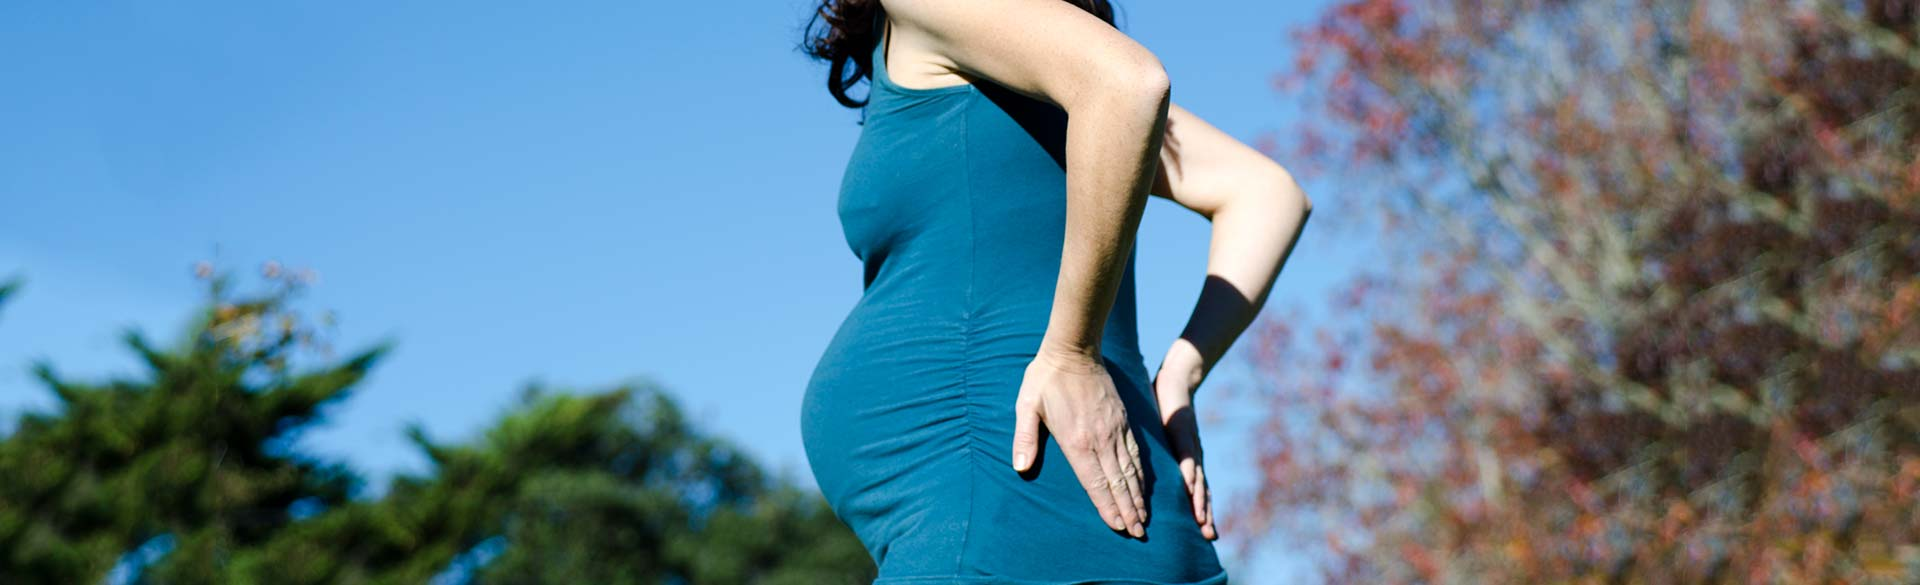 Best Calgary Peri-natal Care| National Spine Care | Calgary Downtown Peri-natal Care